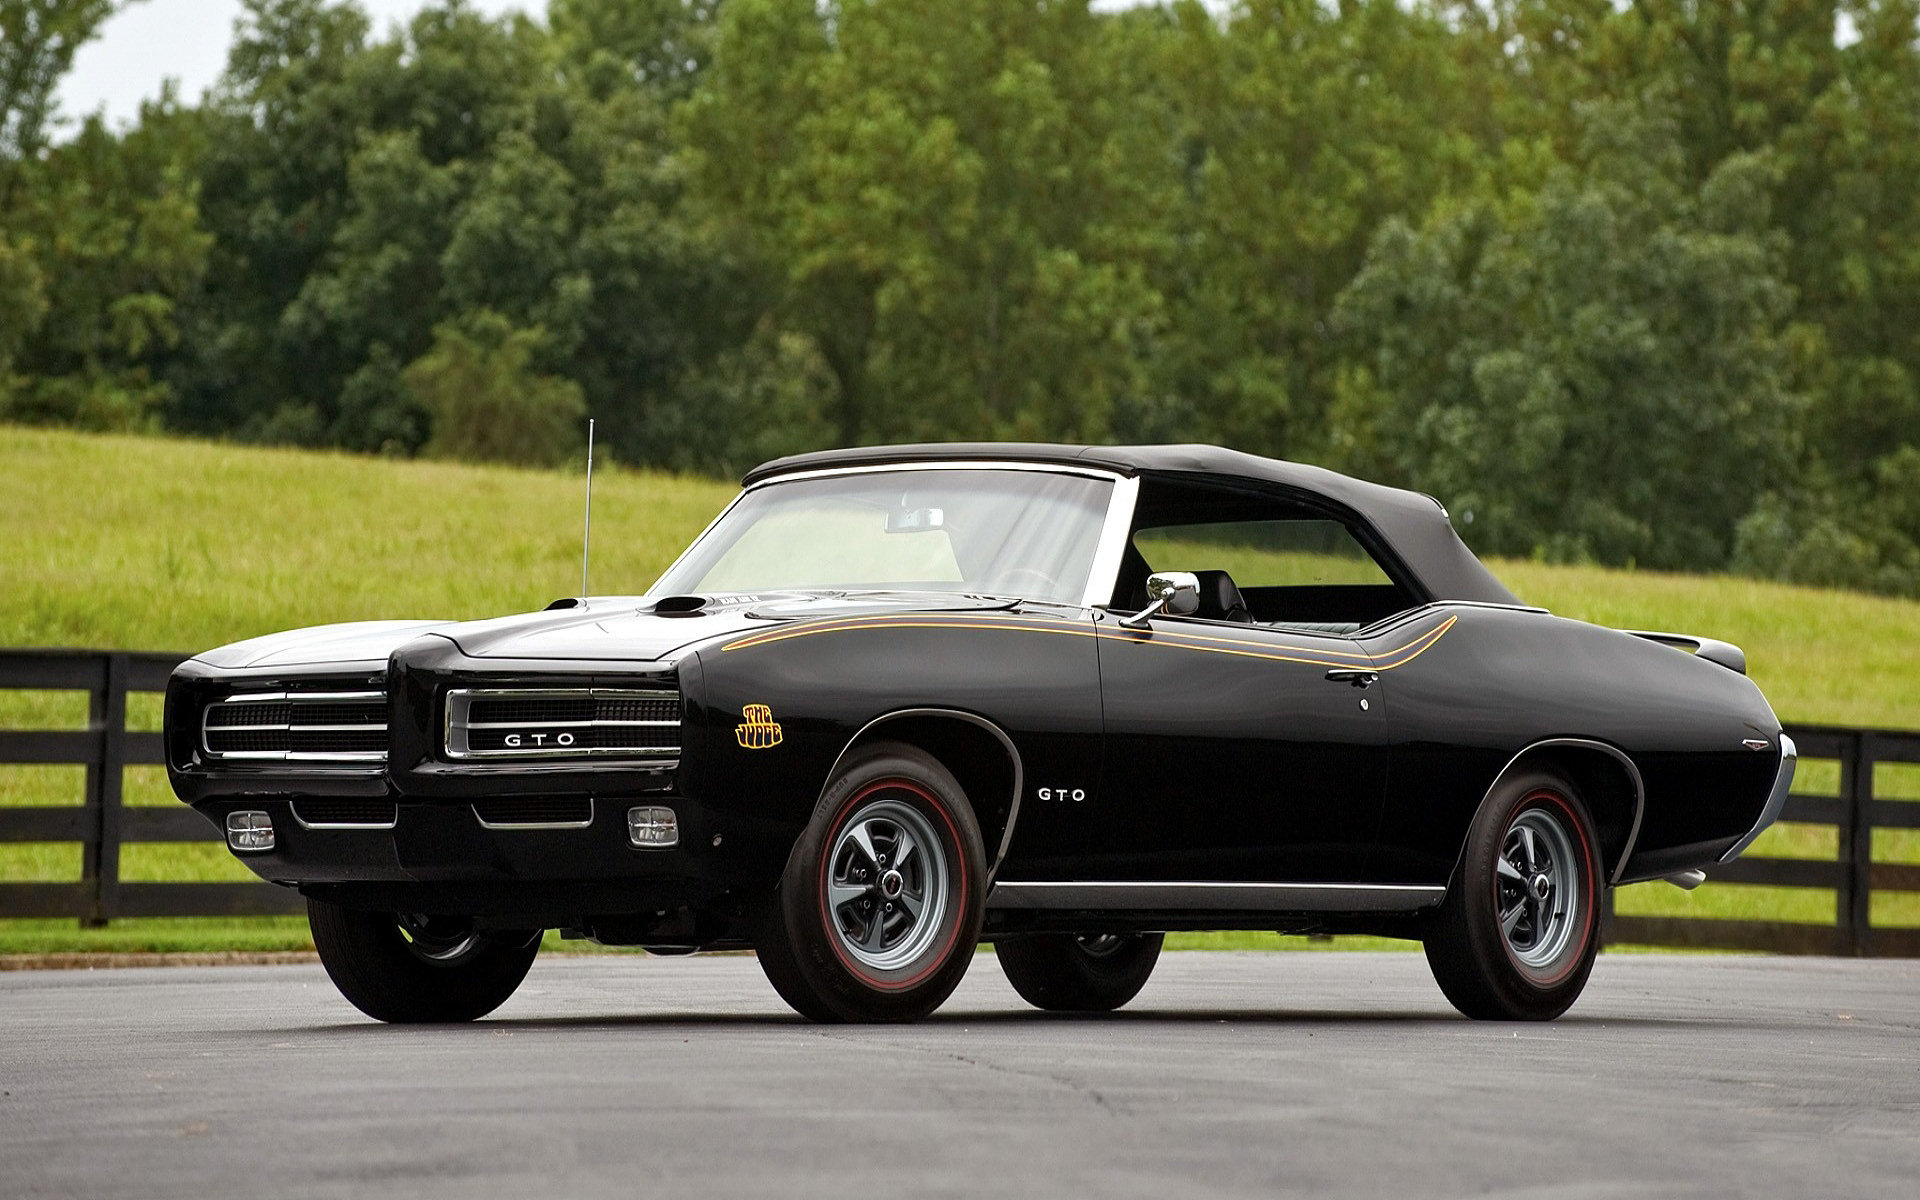 Pontiac GTO Full HD Wallpaper and Background Image | 1920x1200 | ID:196773